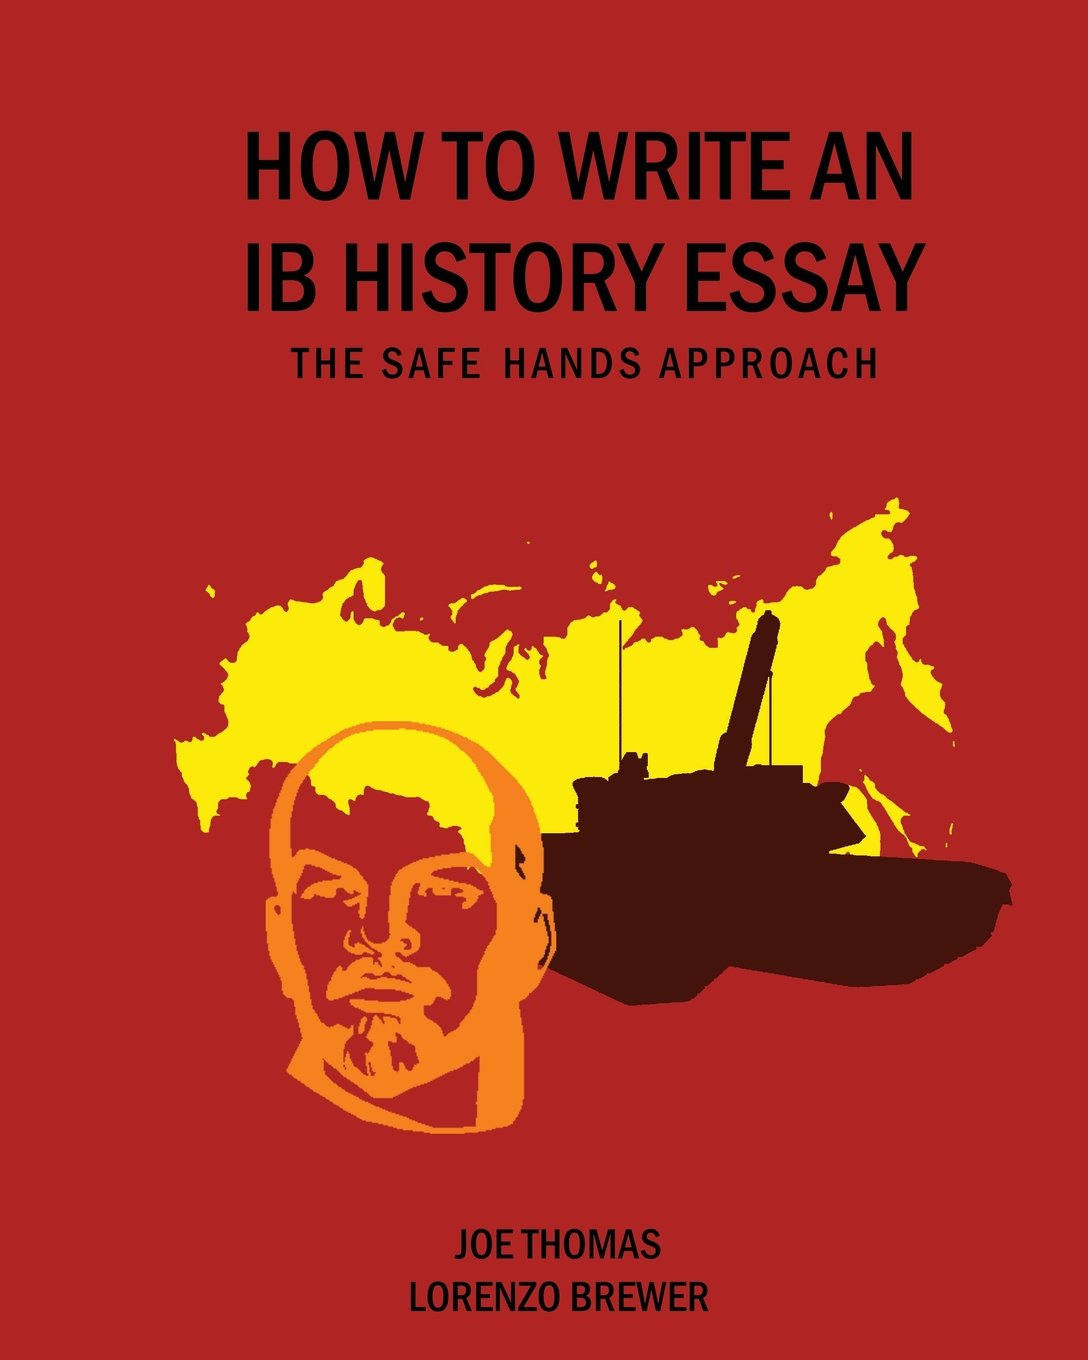 how to write an ib history essay the safe hands approach joe thomas lorenzo brewer 9780956087362 amazoncom books - History Extended Essay Example